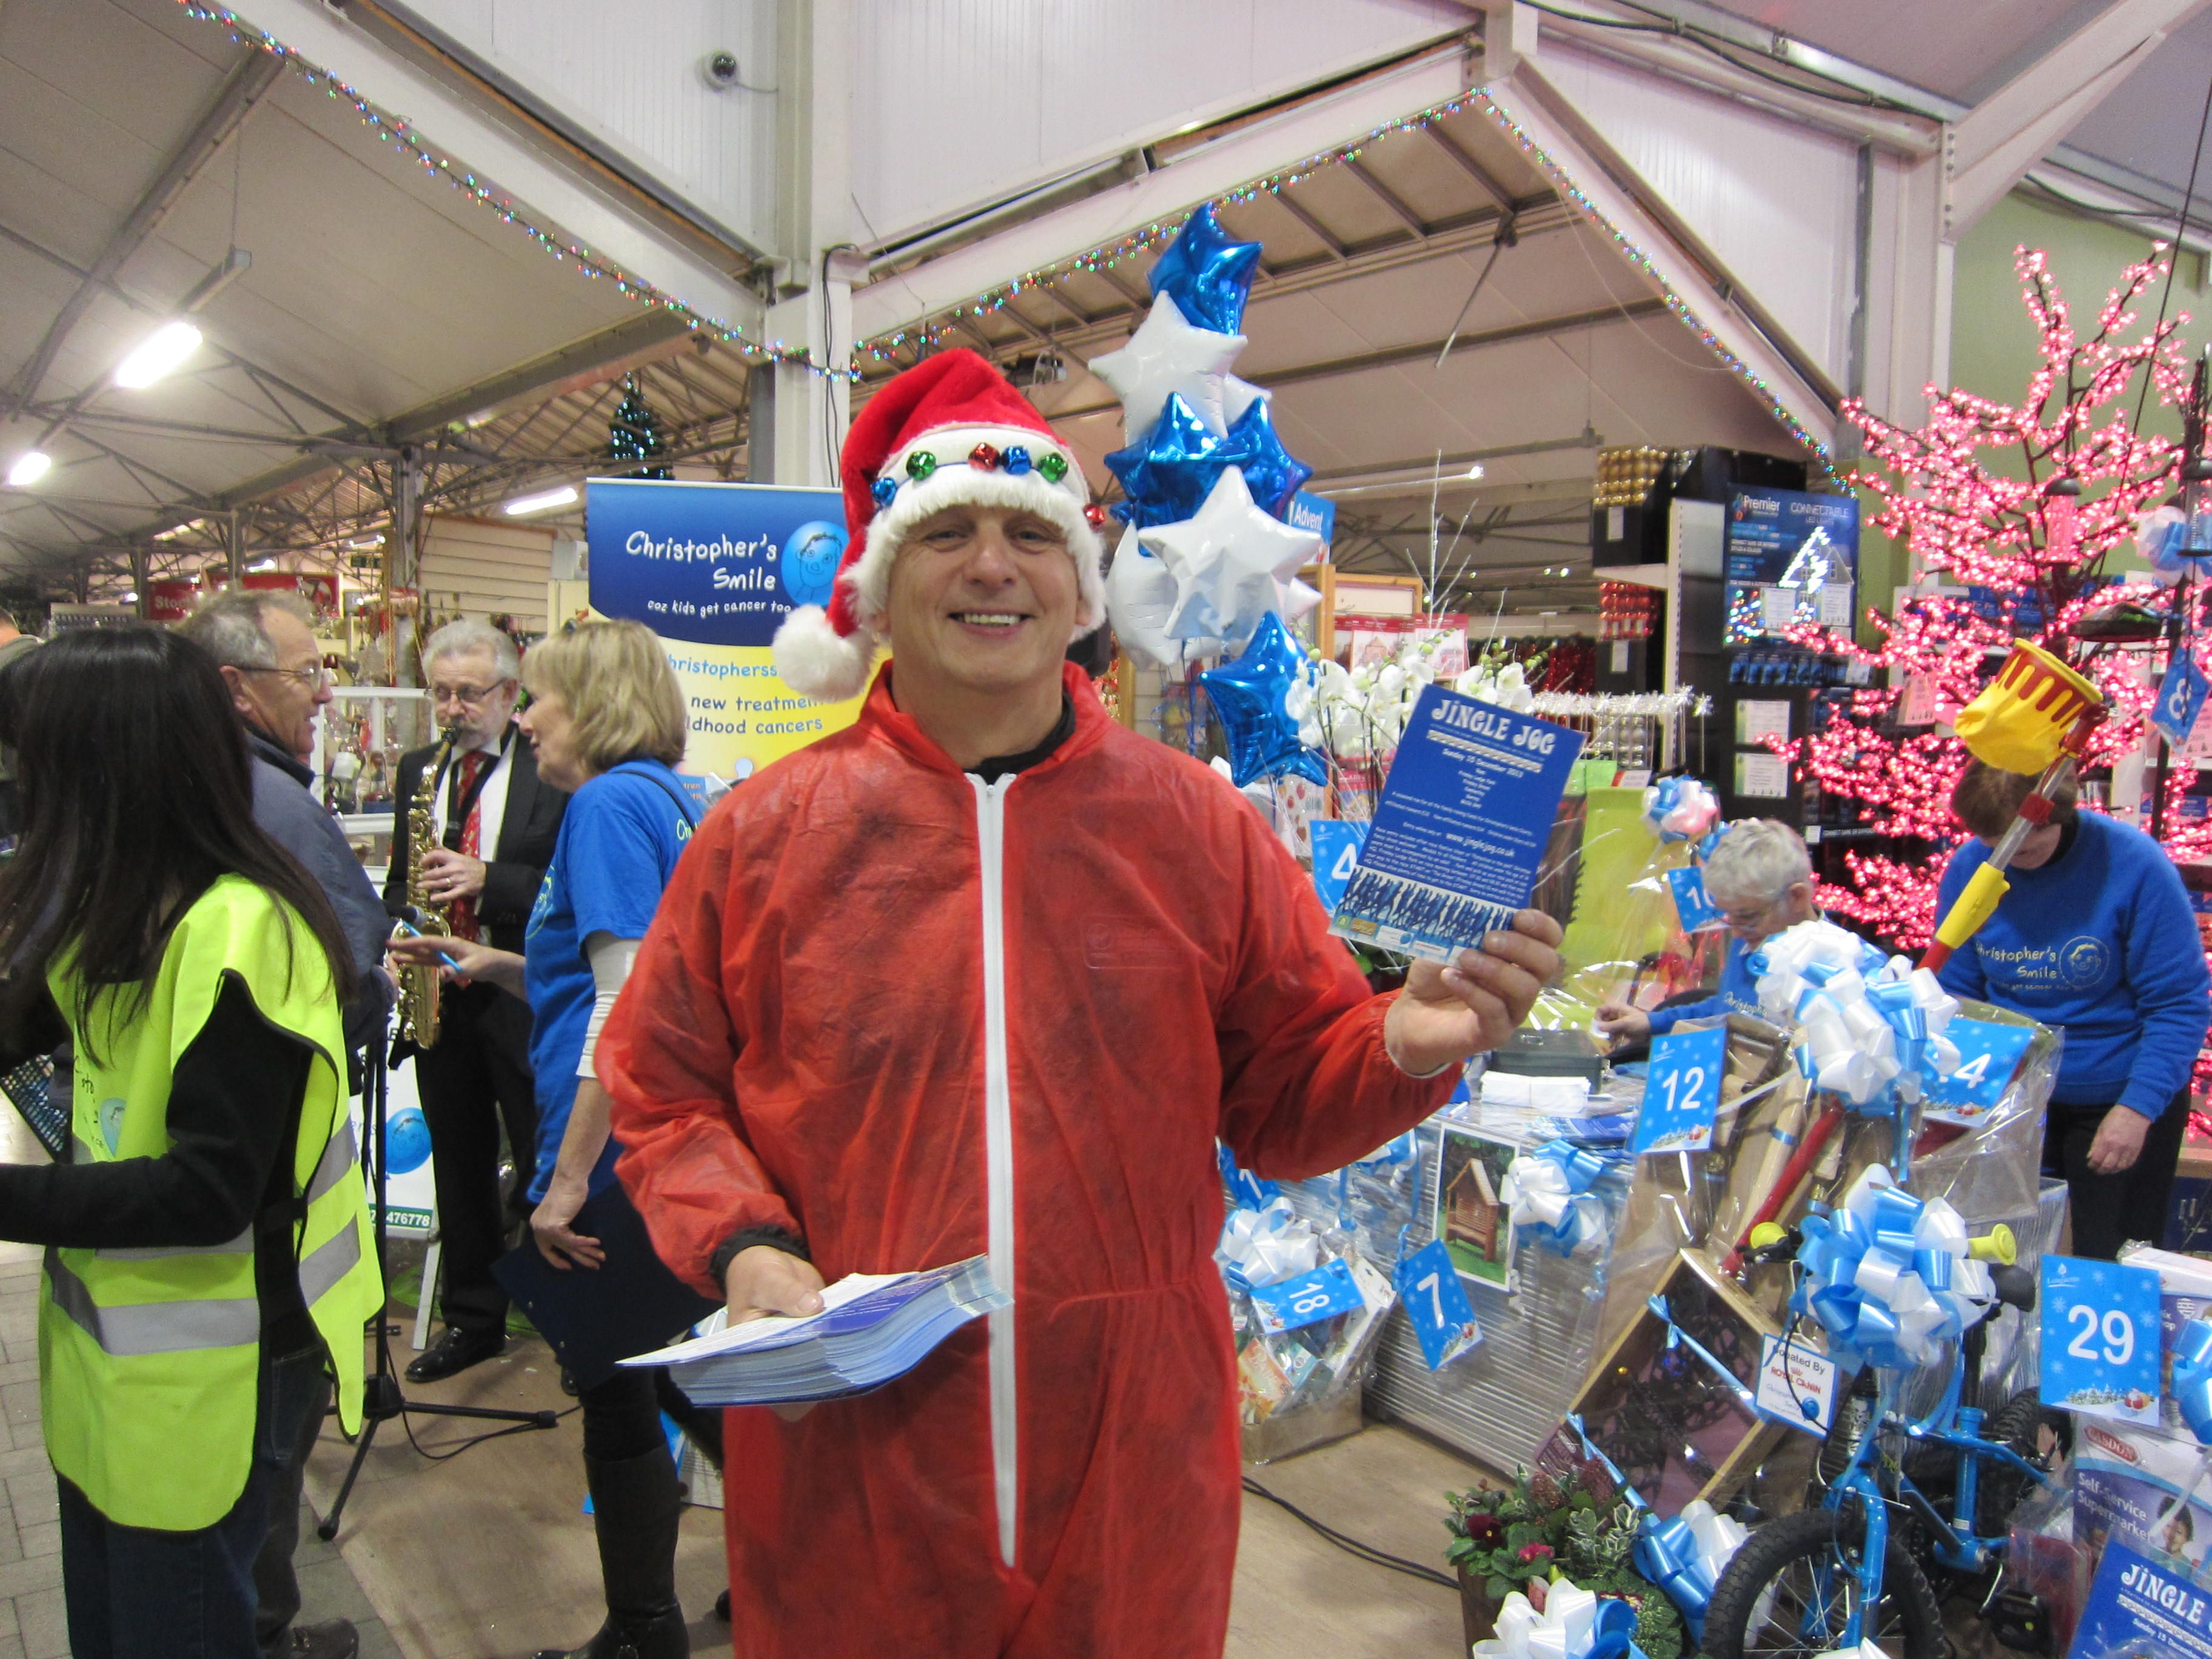 Getting ready for the Santa run! Longacres Christmas Open Evening 2013